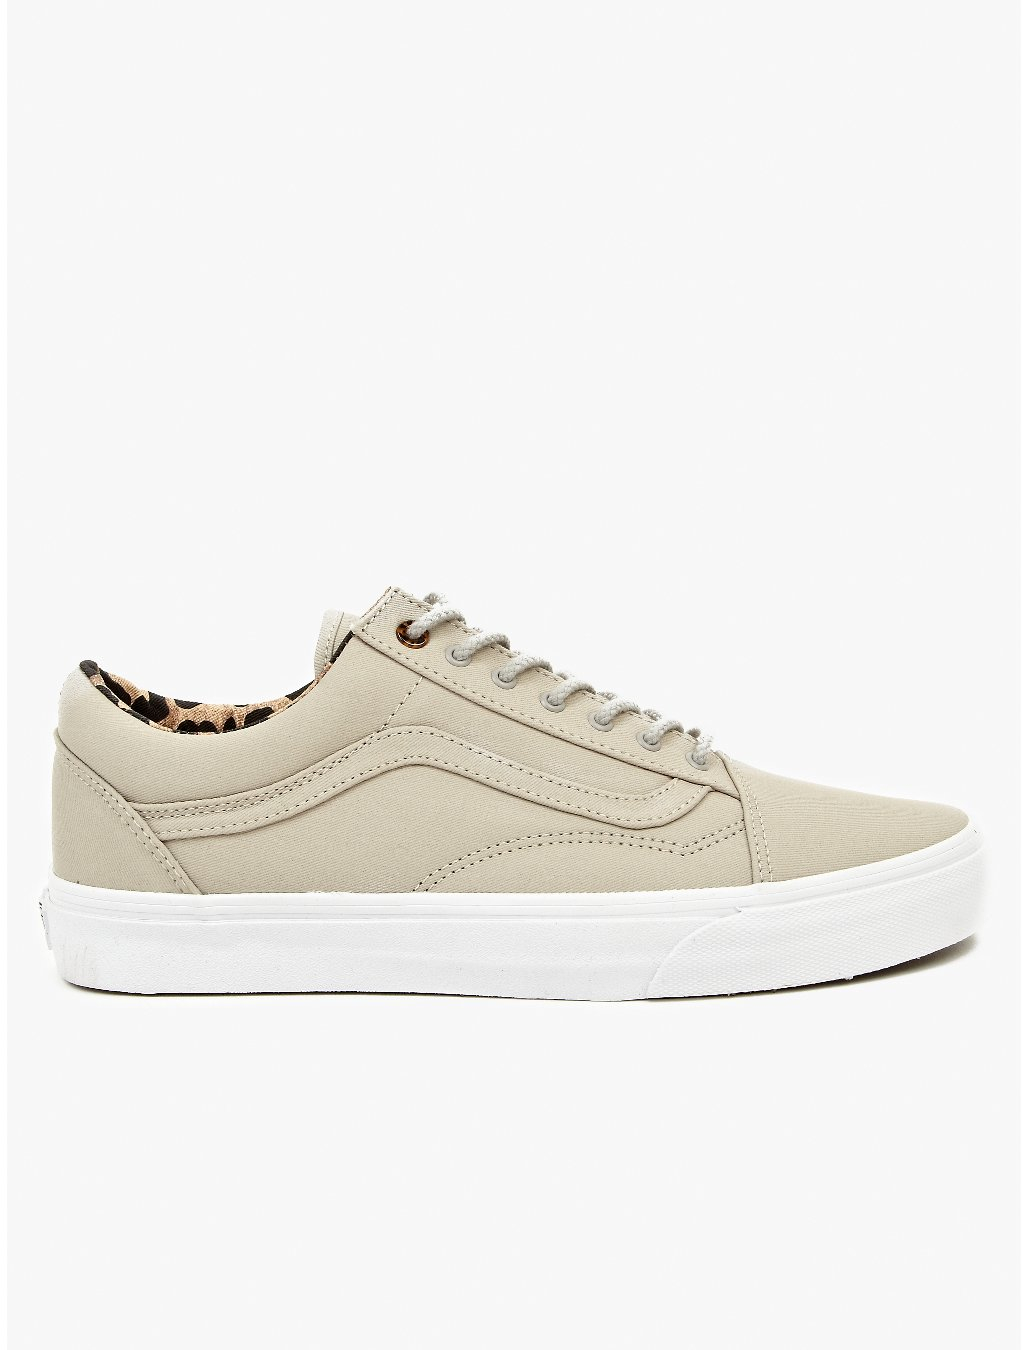 6502a49a54e366 Vans Old Skool Taupe ifko-pub.fr